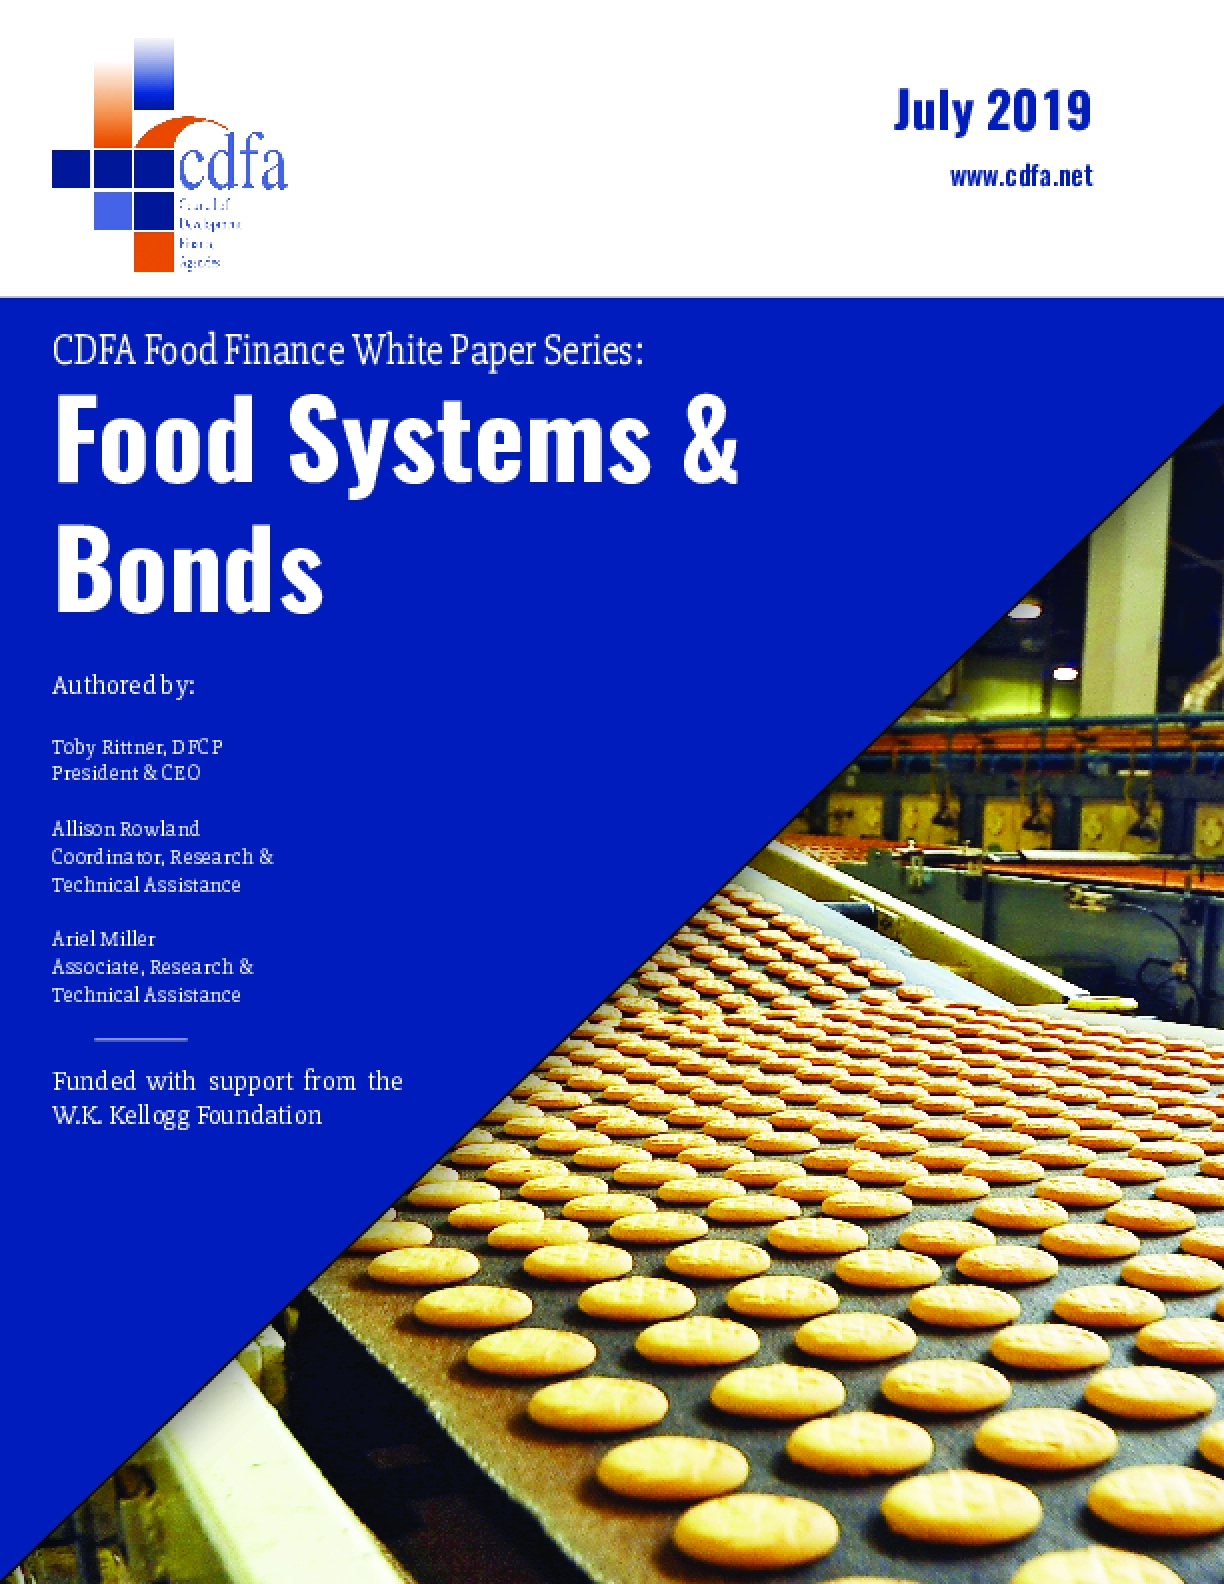 Food Systems & Bonds